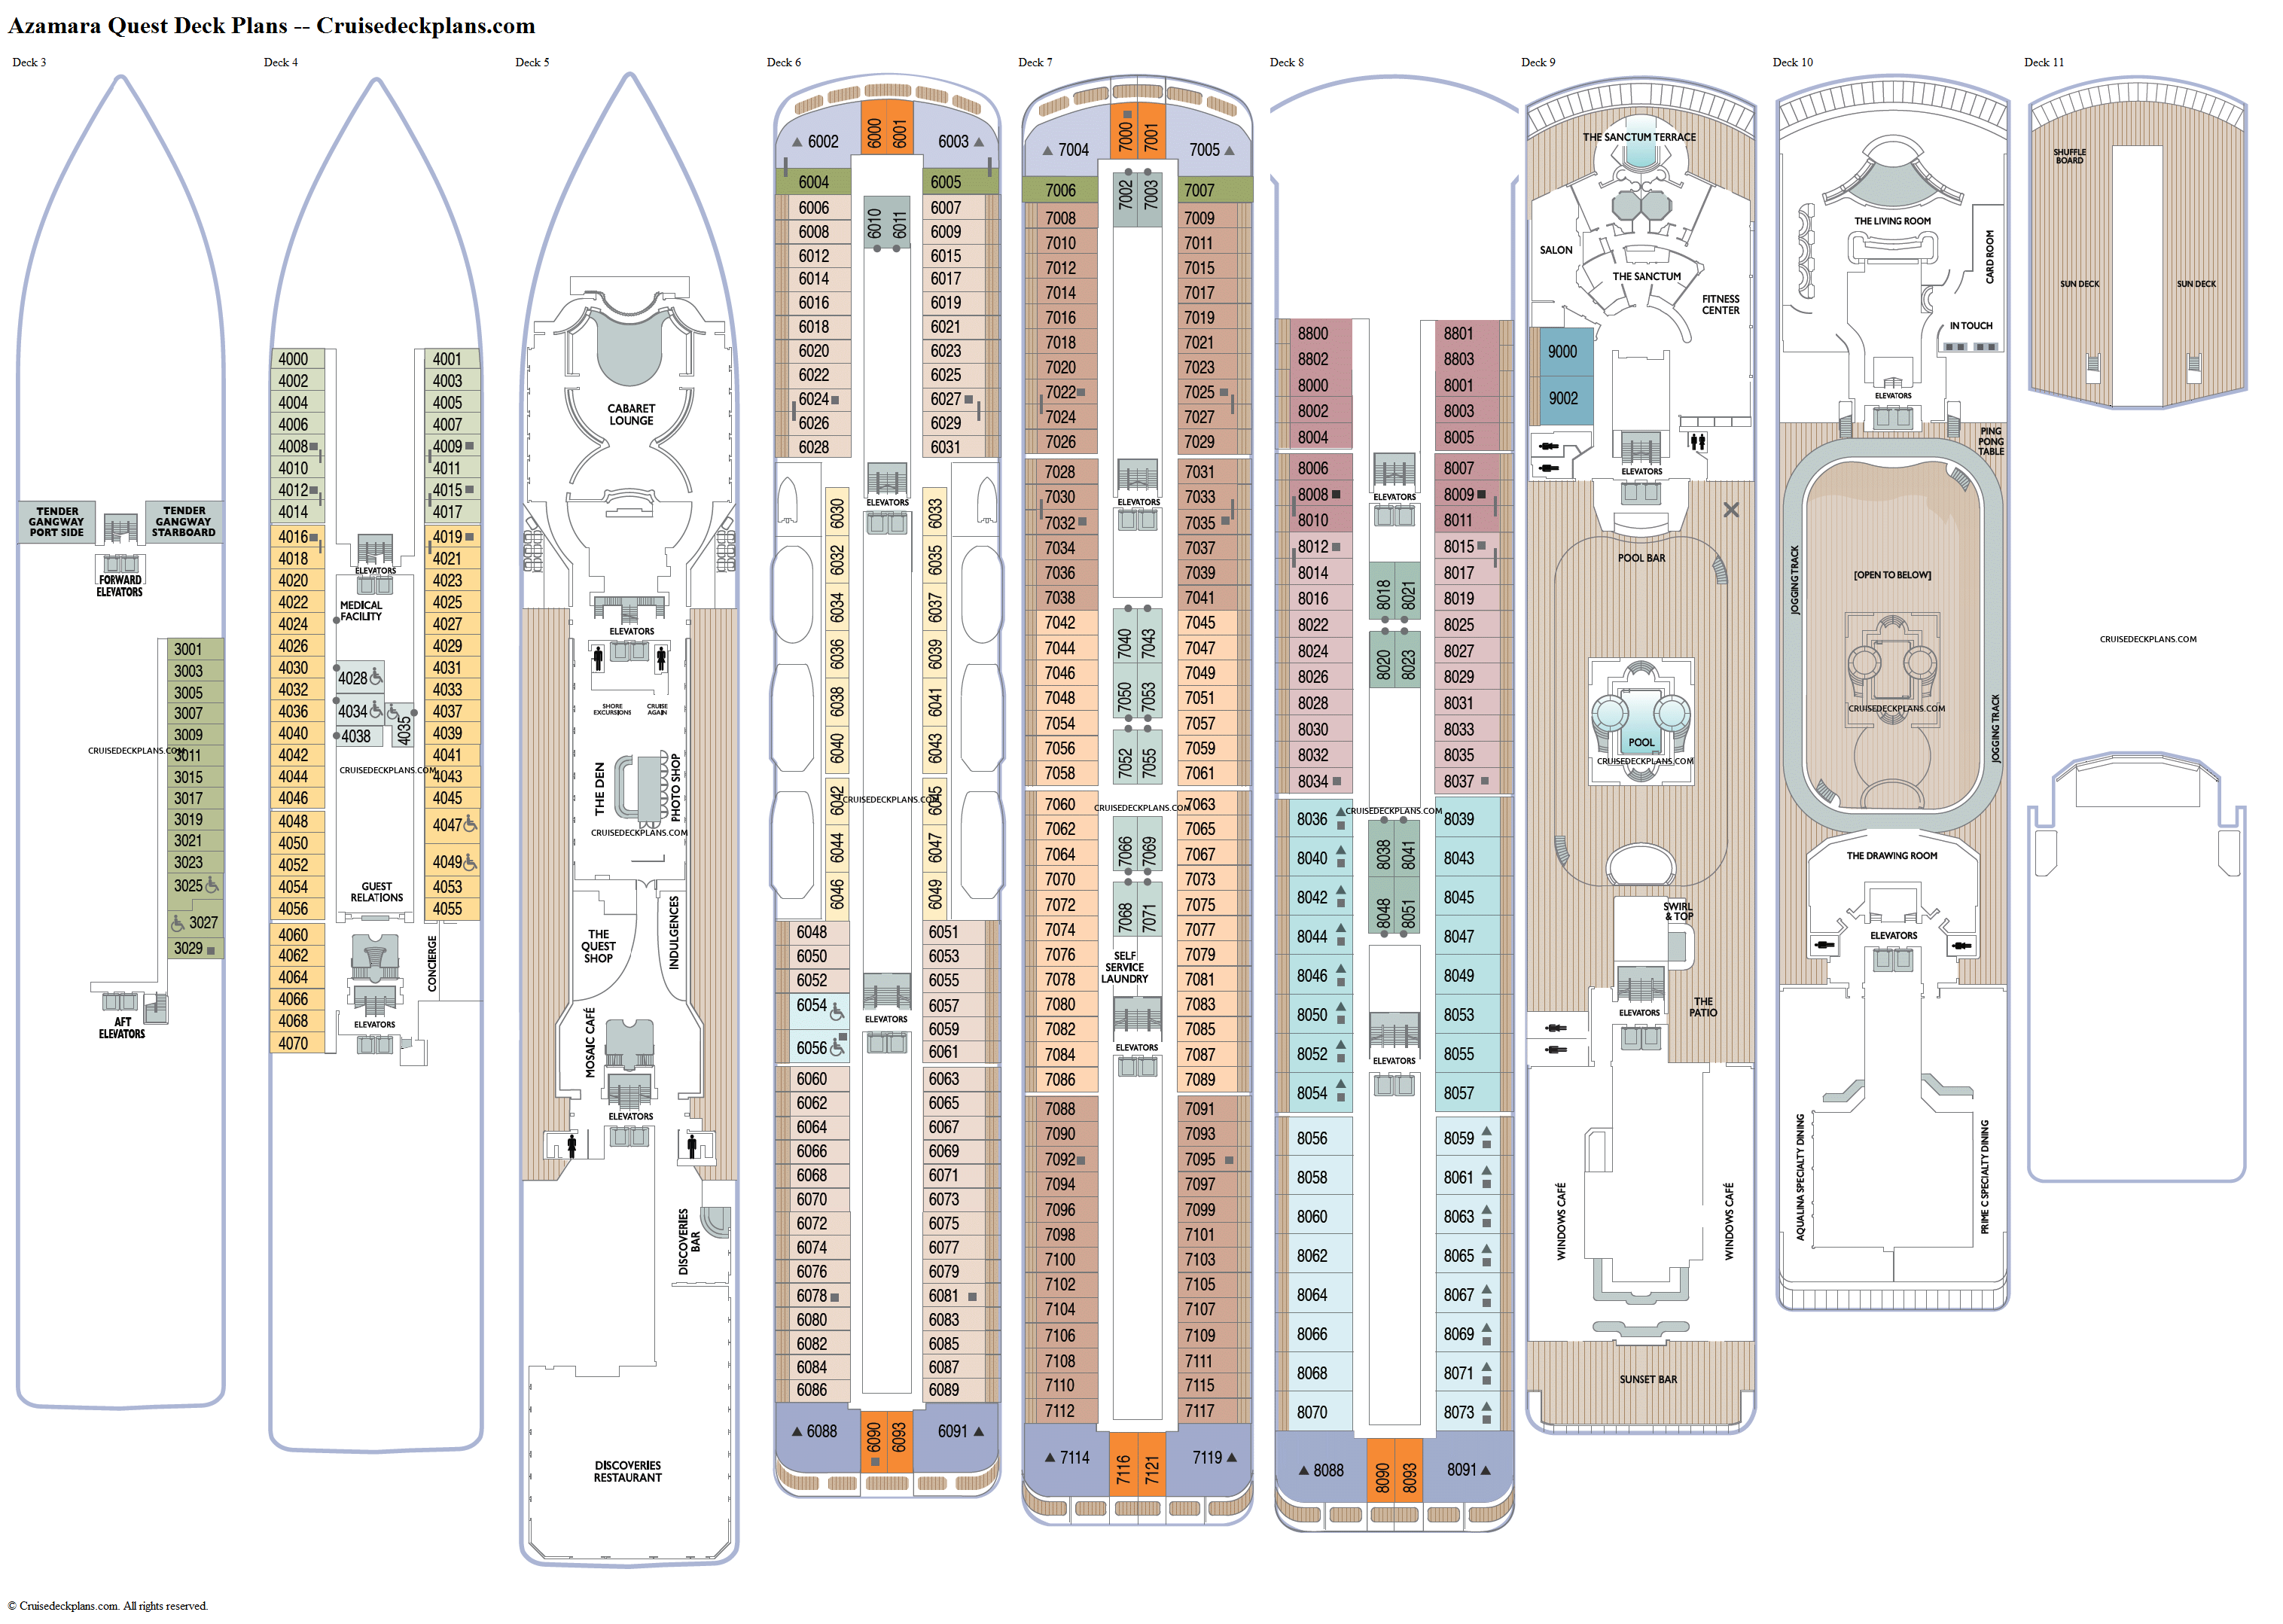 Azamara Quest deck plans image